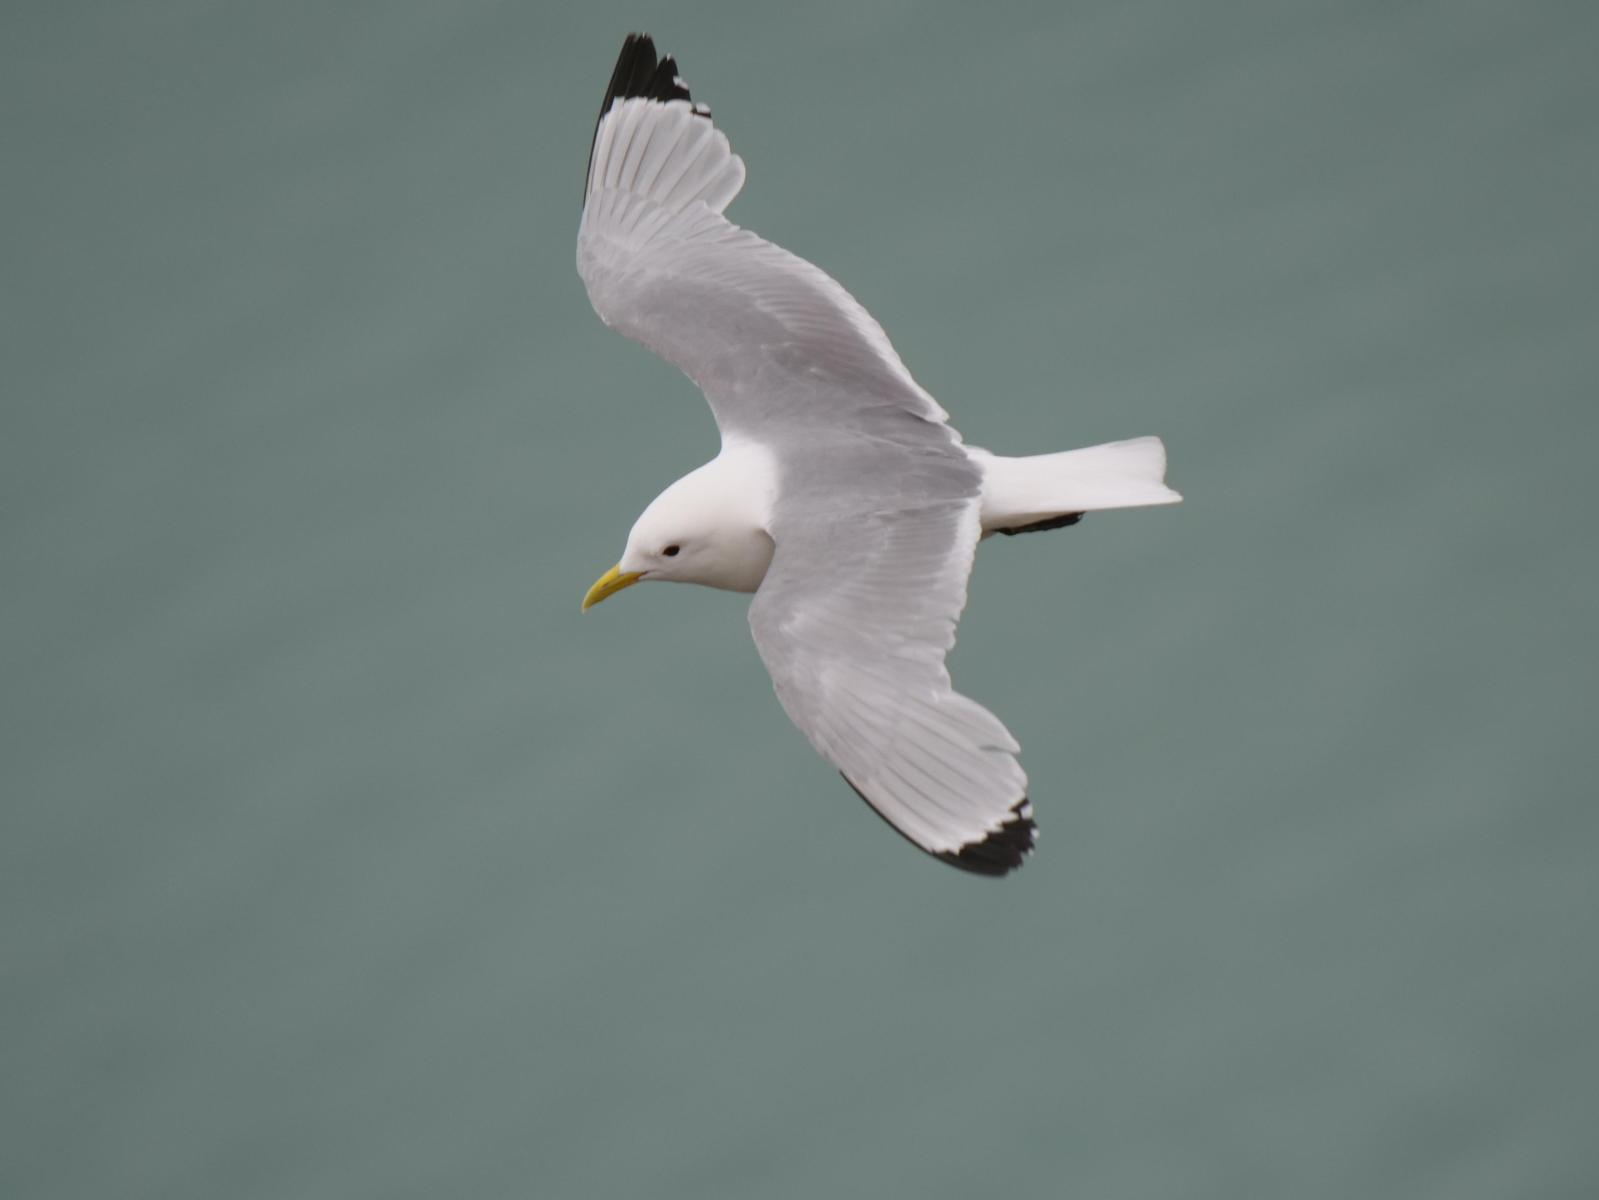 Black-legged Kittiwake Photo by Peter Lowe